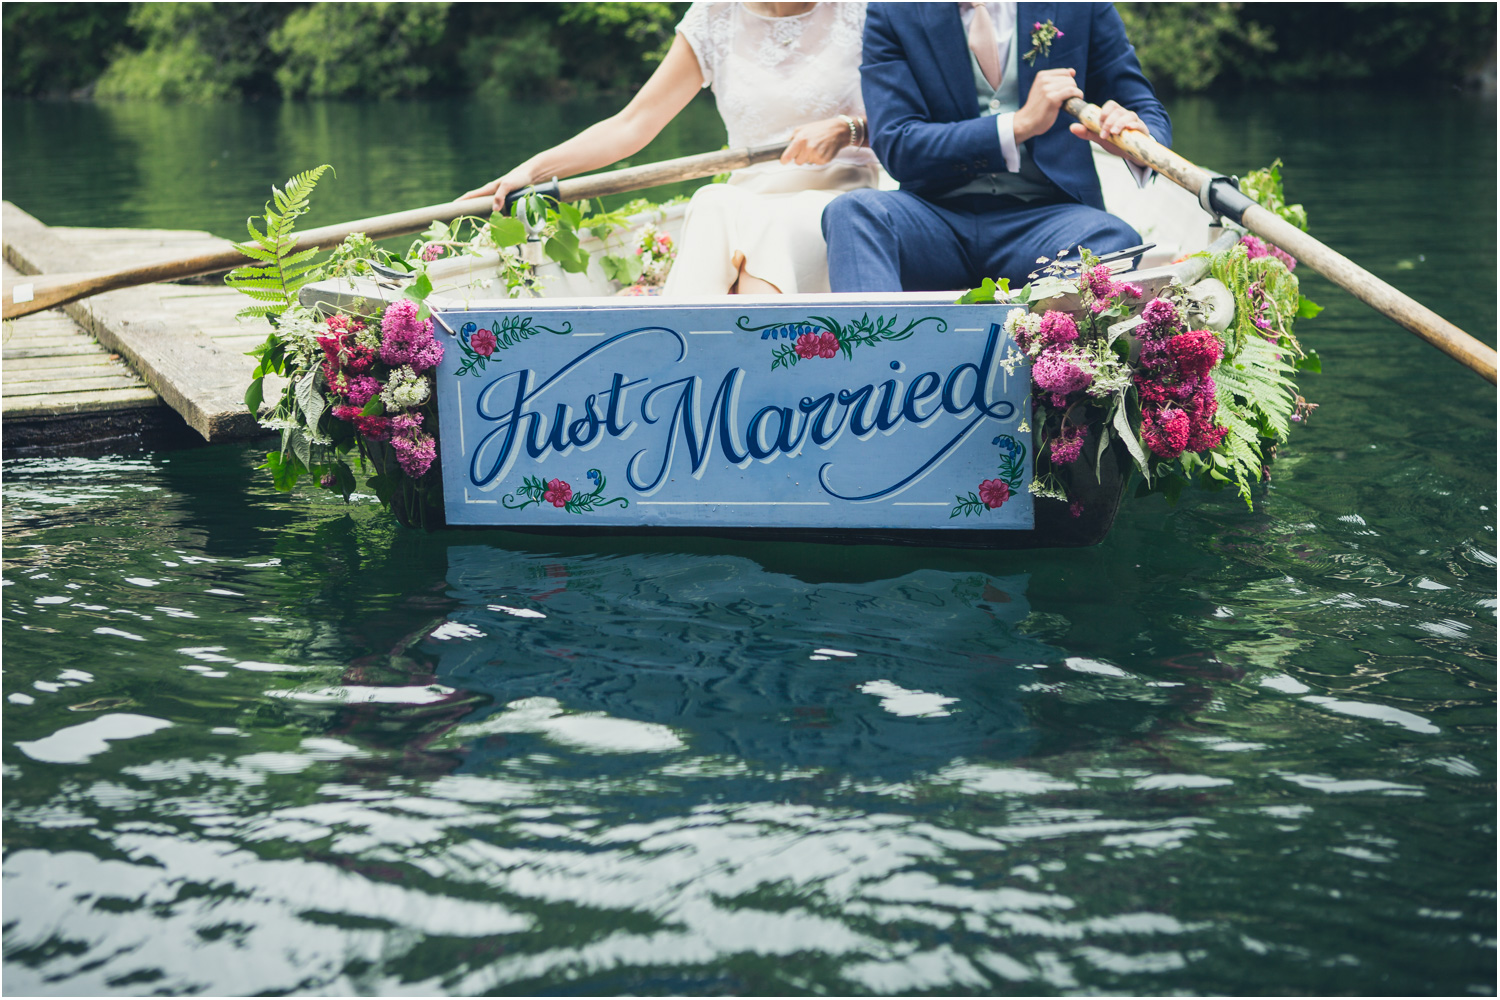 14 just married painted sign on wedding boat appleBimages